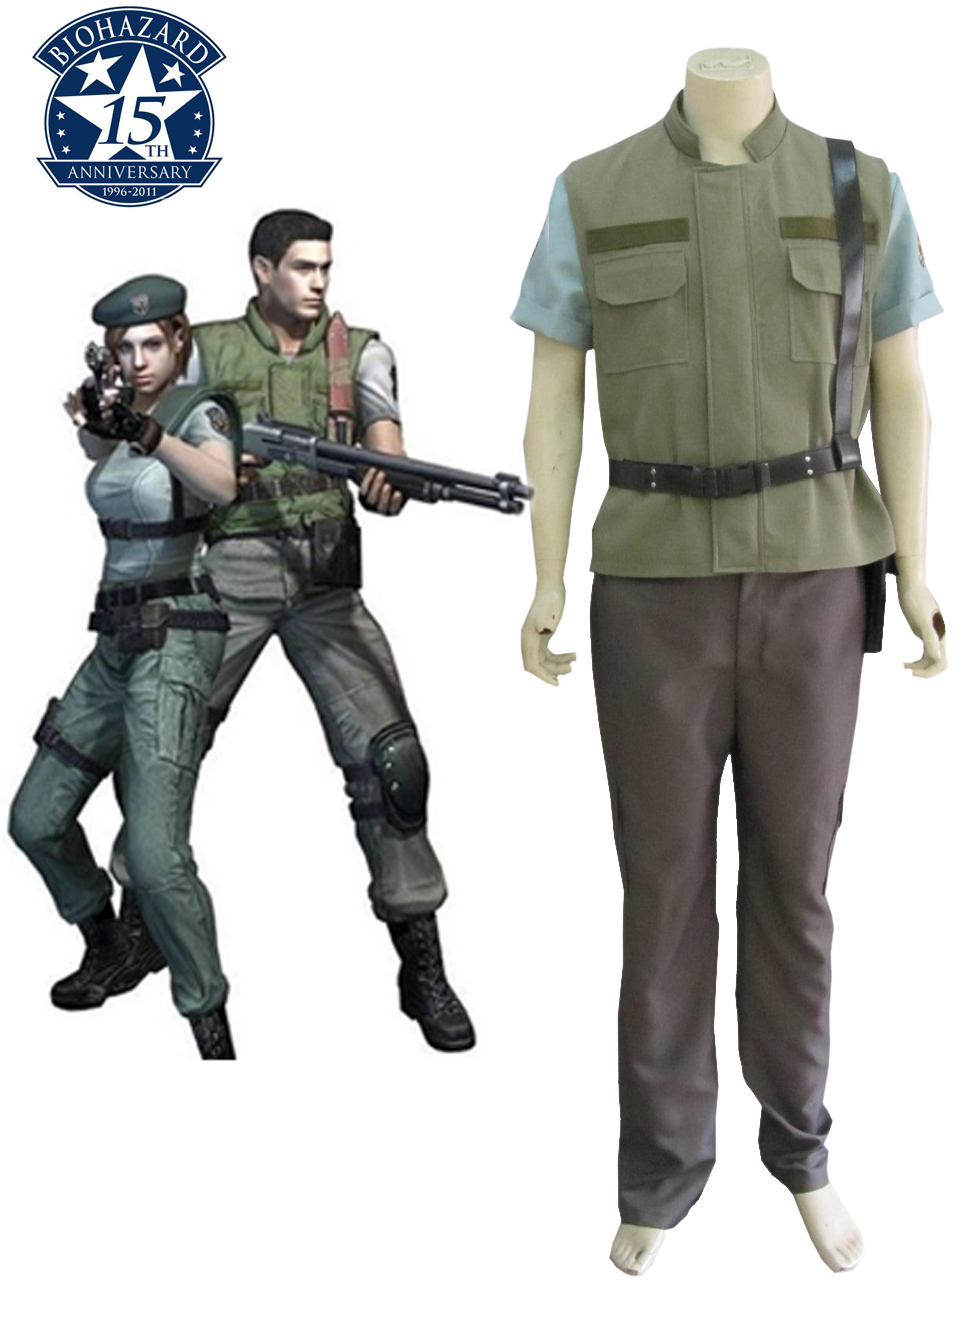 Free Shipping Resident Evil 1 Chris Redfield S.T.A.R.S. Uniform Anime Cosplay Costume